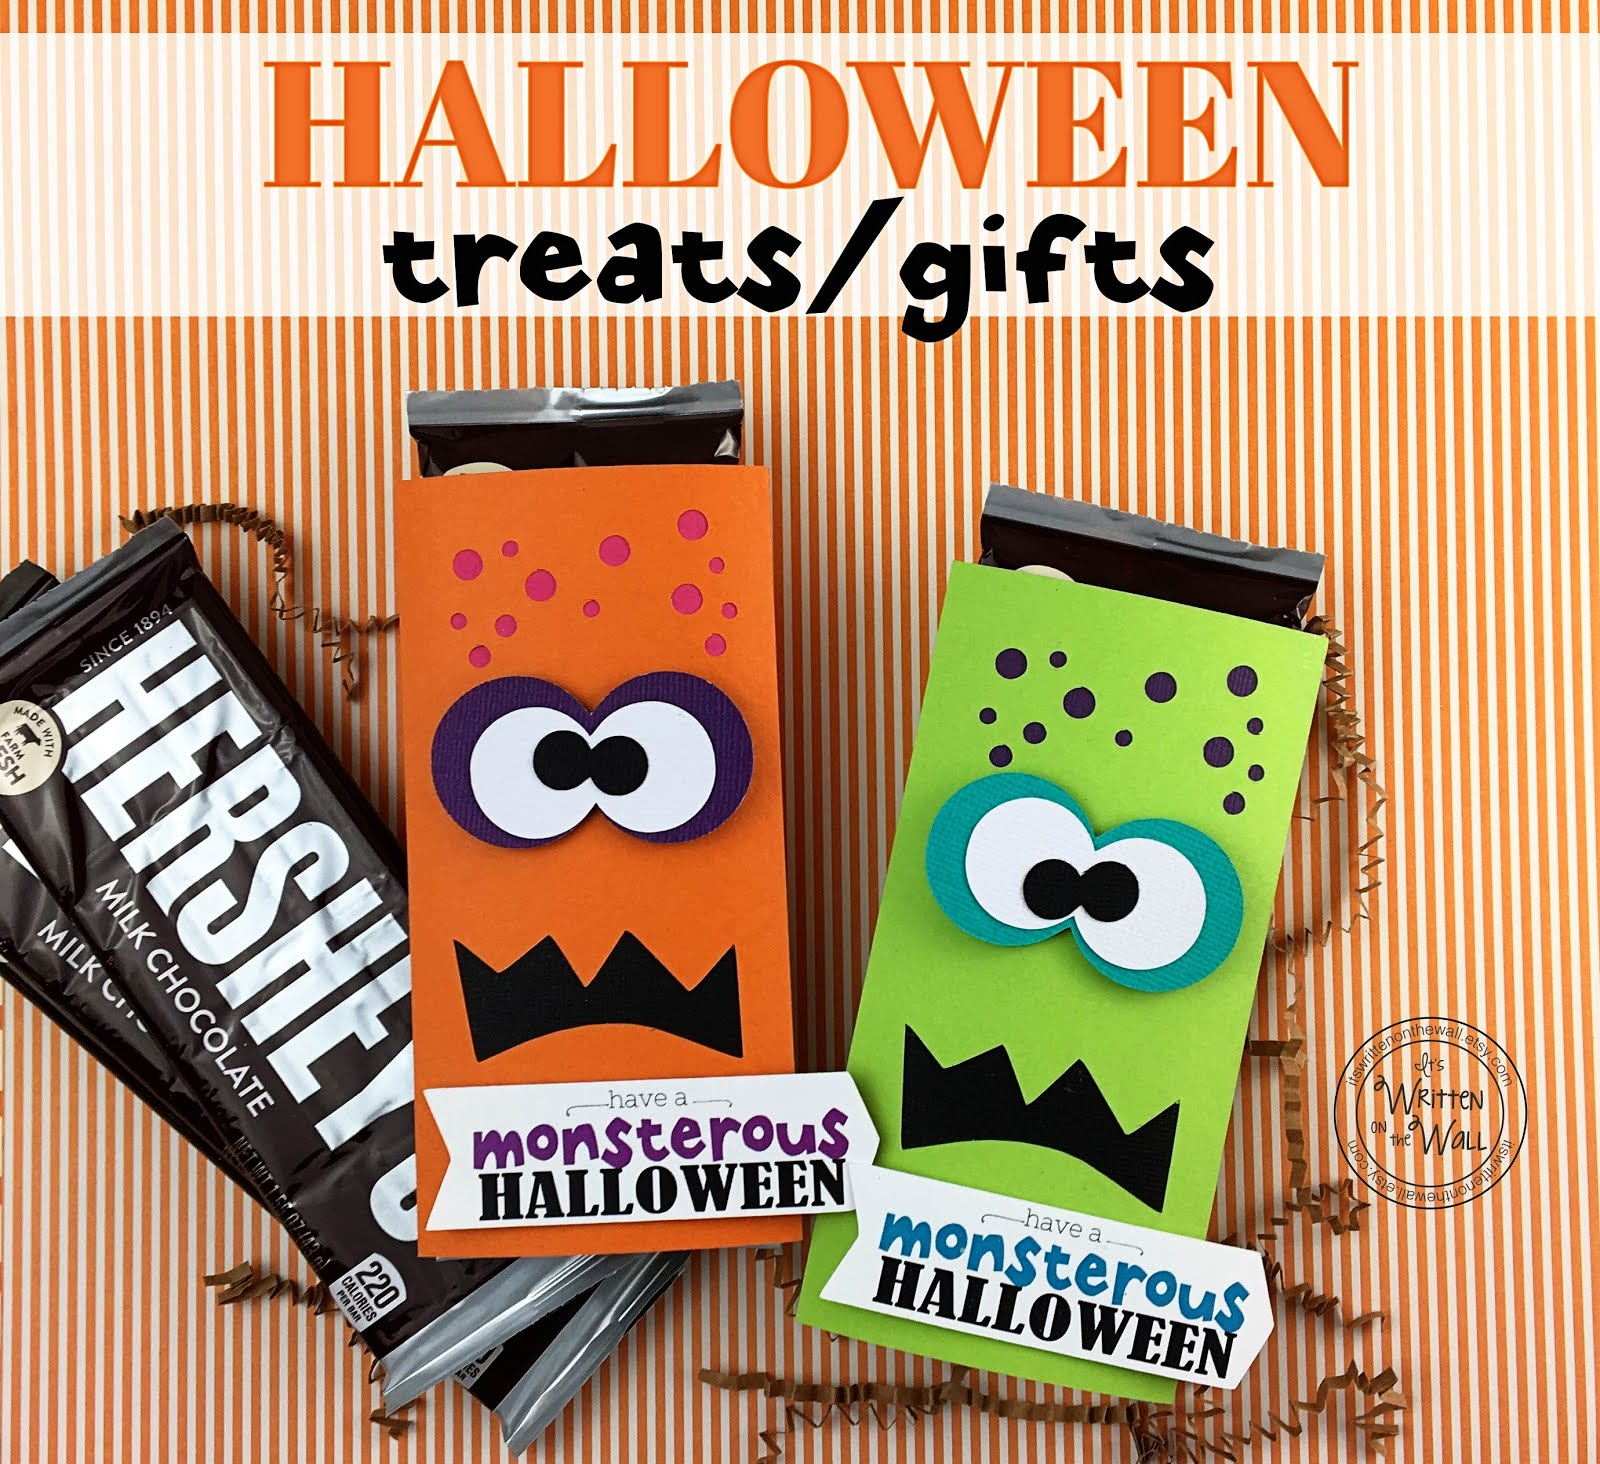 Monsterous Halloween Candy Bar Wrappers